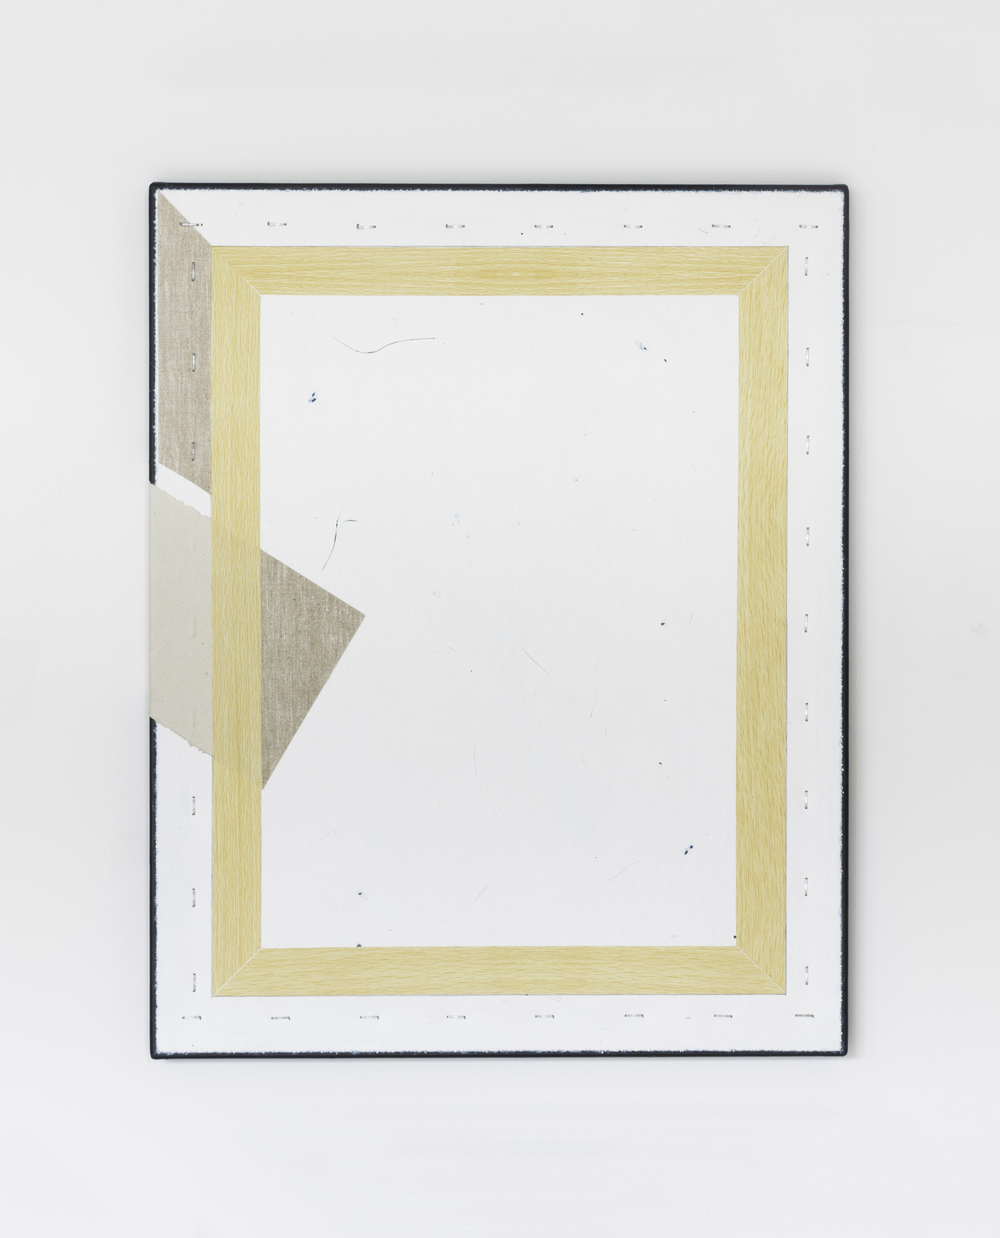 Painting No.9 2015 Awagami paper, vinyl wood adhesive, staples, paint, linen, stretcher frame 40 x 50 cm $5000 USD